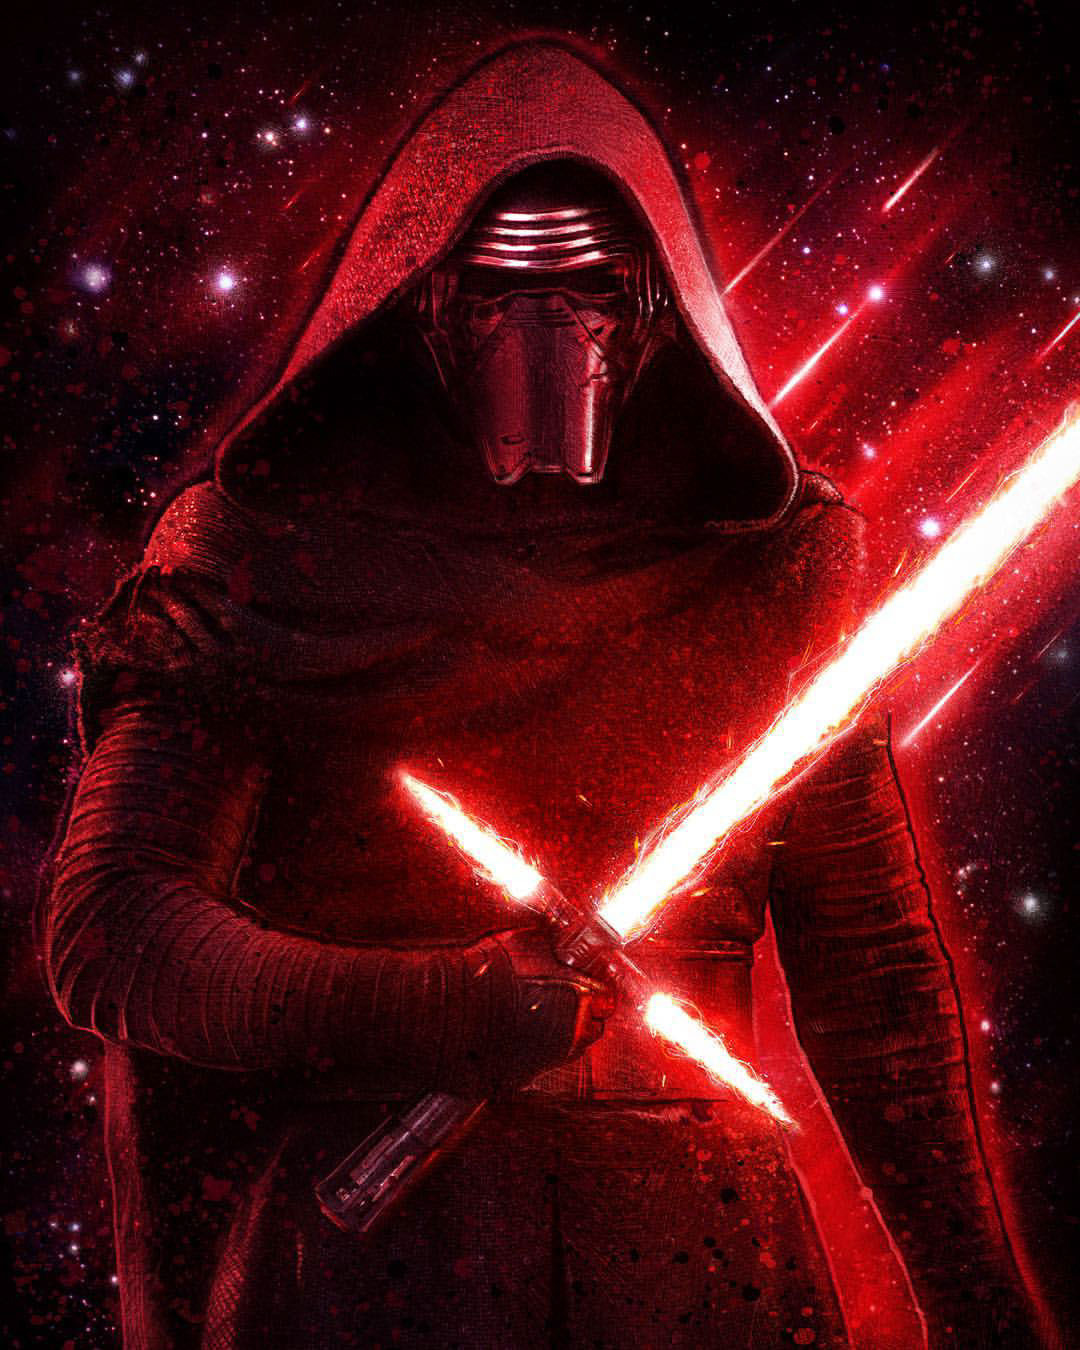 Kylo Ren (As of The Last Jedi)